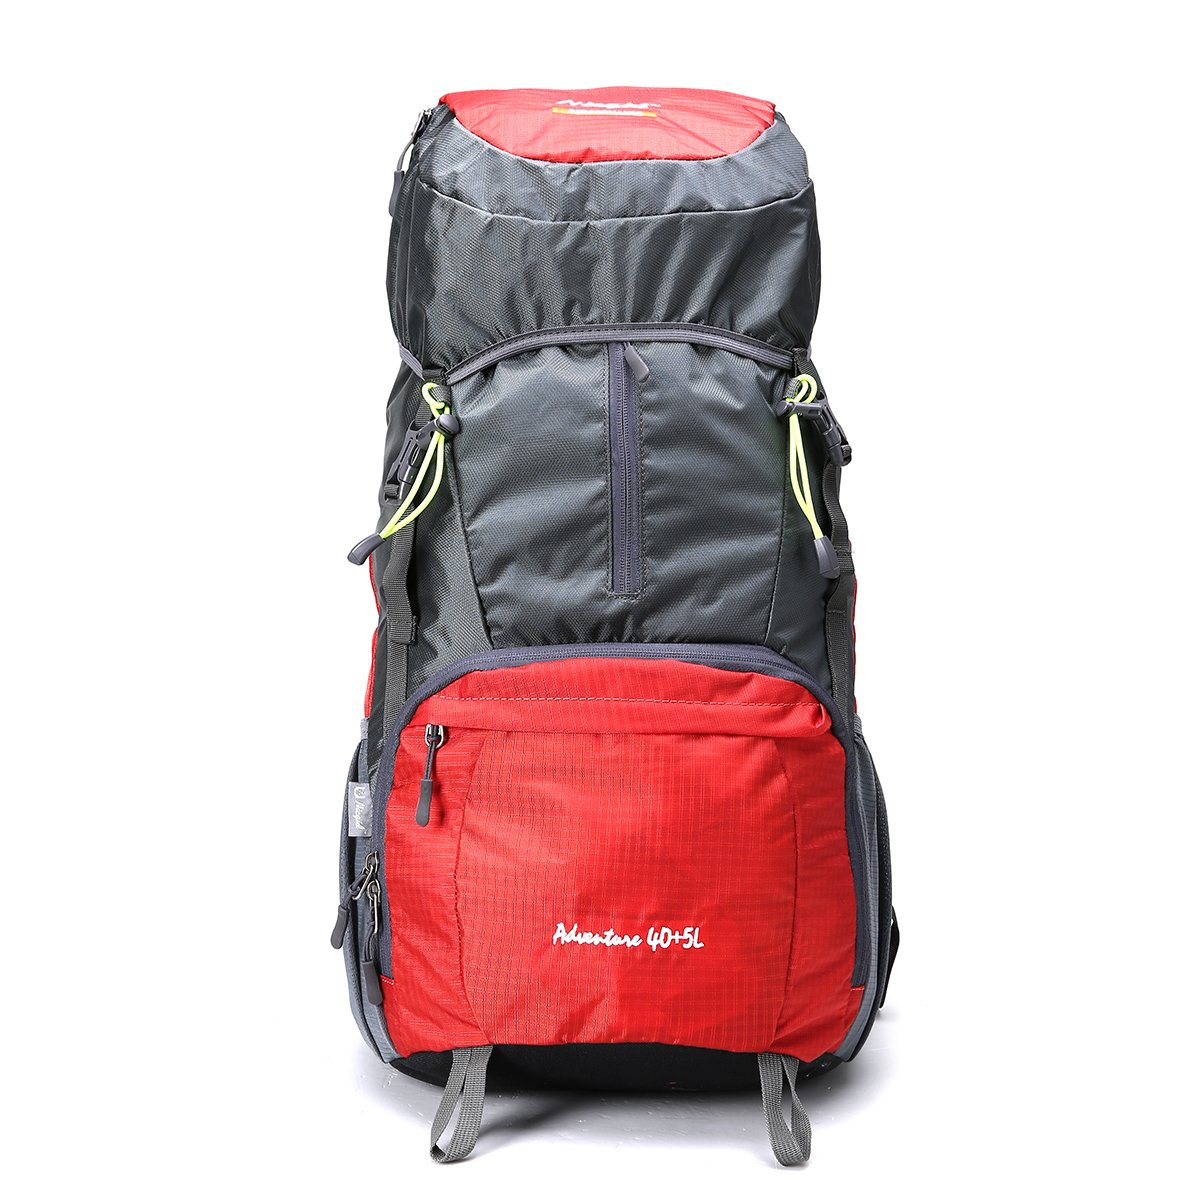 50L Lightweight Hiking Backpack Foldable Multi-Functional Travel Bag Water Resistant Casual Camping Rucksack for Men Women Outdoor Sport Mountain 96055003